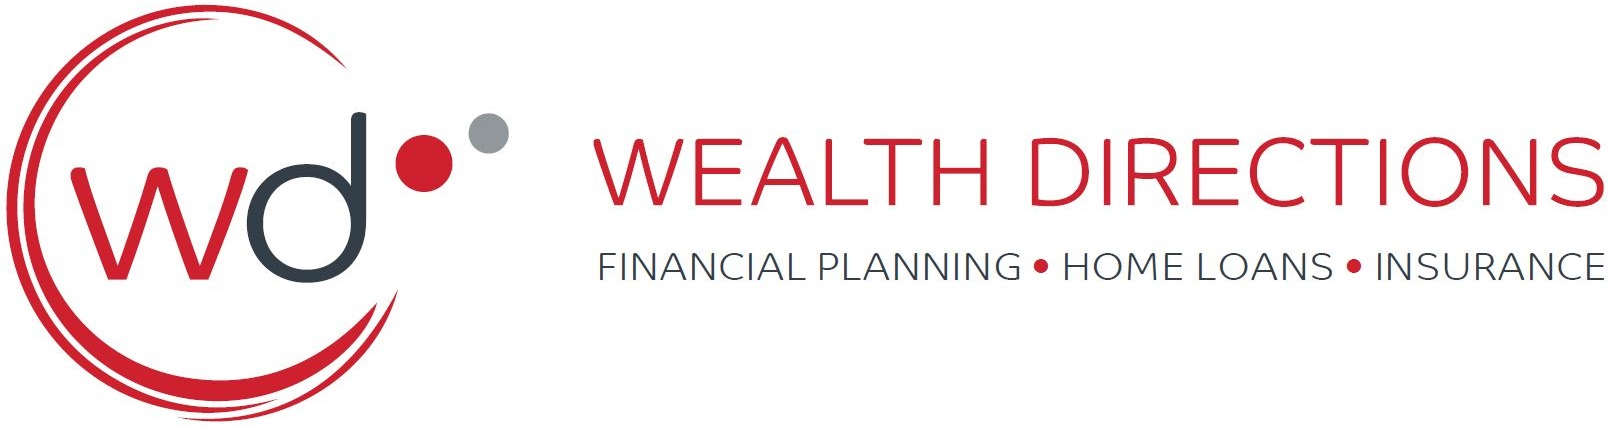 Wealth Directions Financial Strategists Pty Ltd